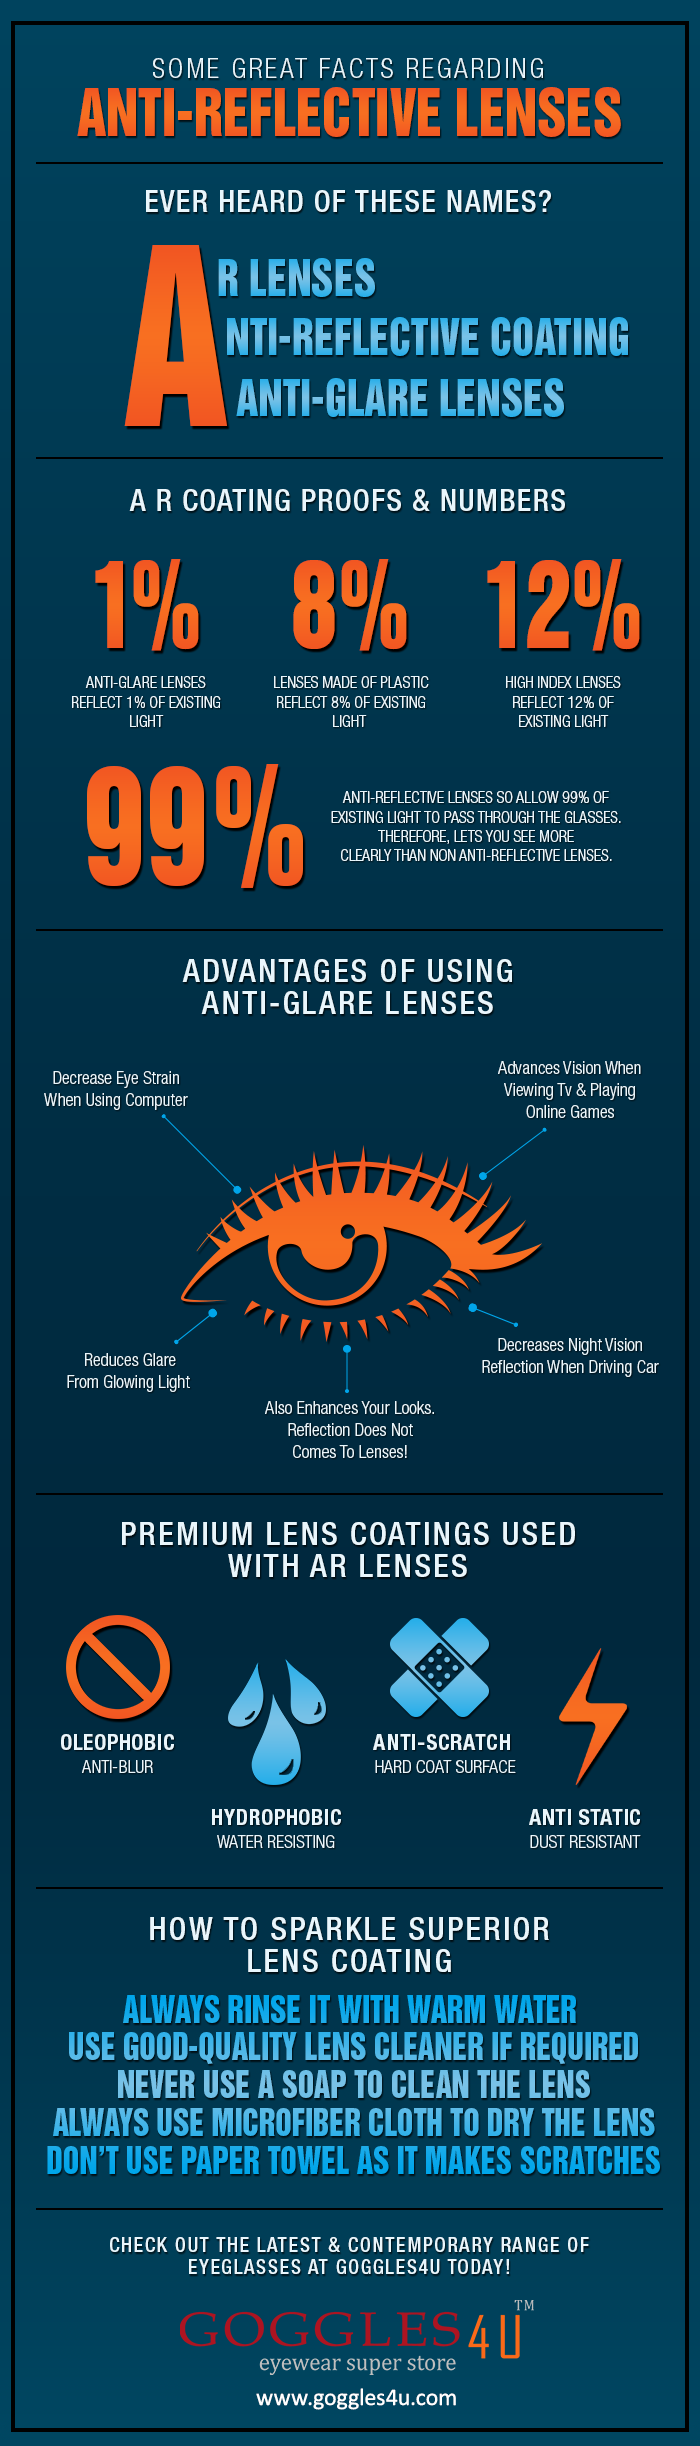 Infographic on Facts Regarding Anti-Reflective Lenses